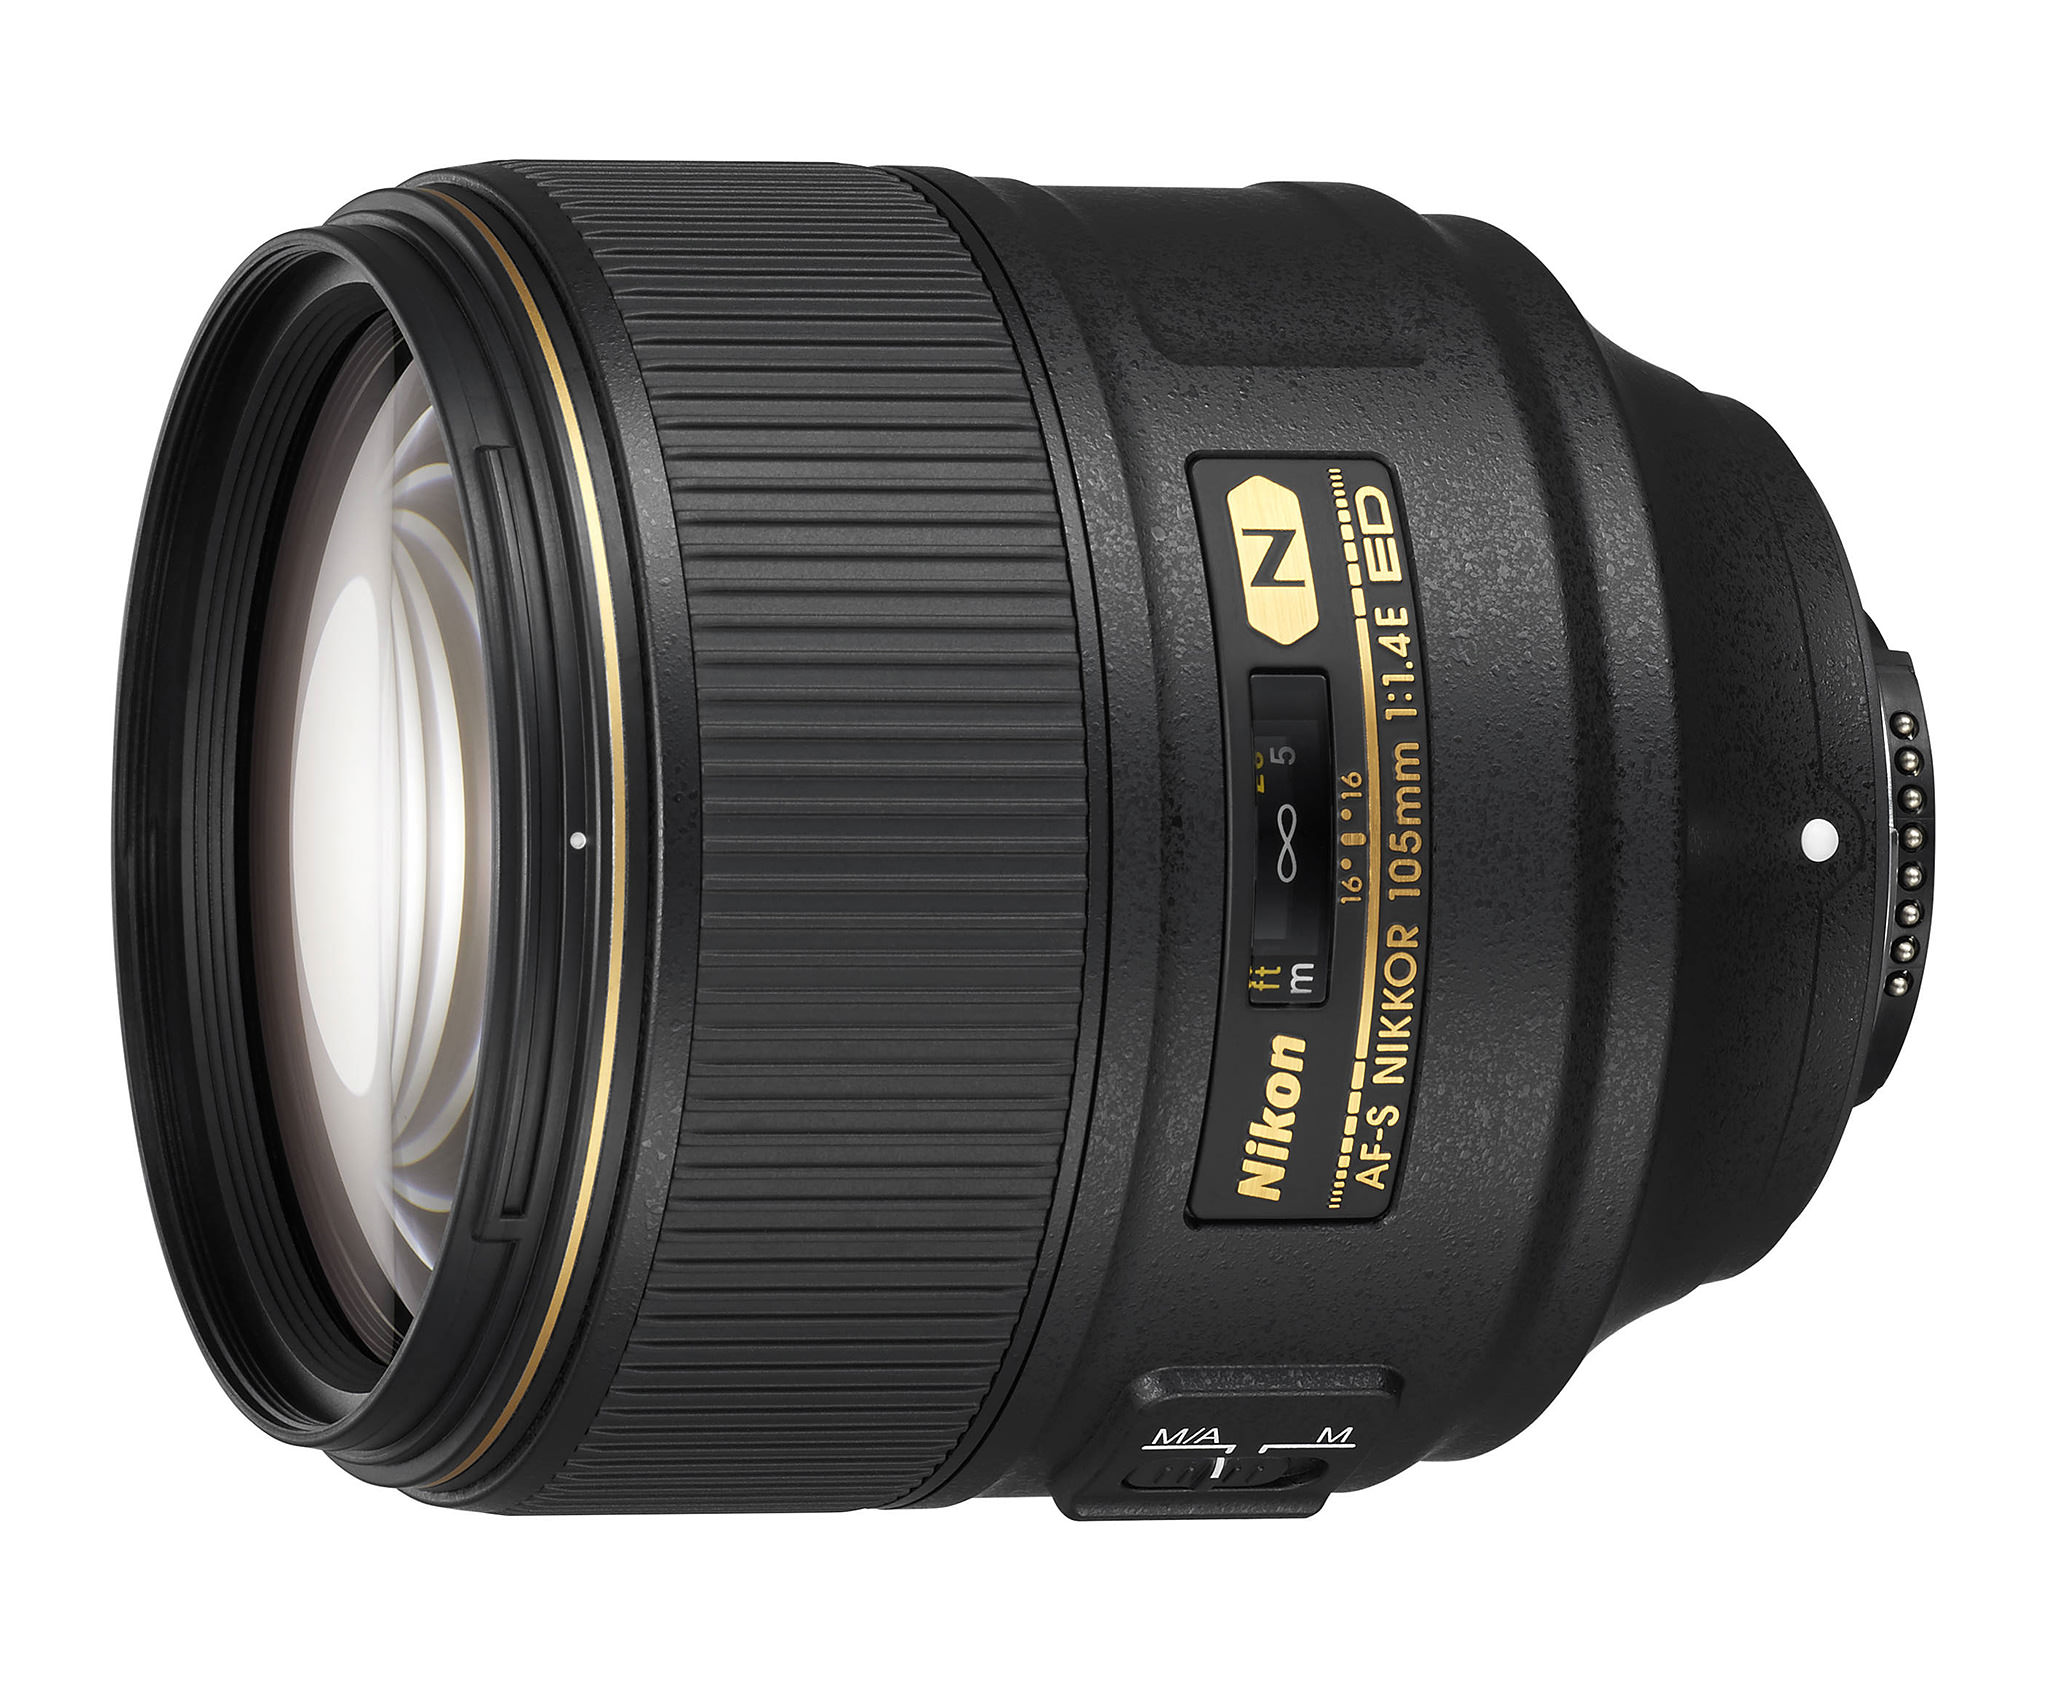 Nikon 105mm f/1.4E Review